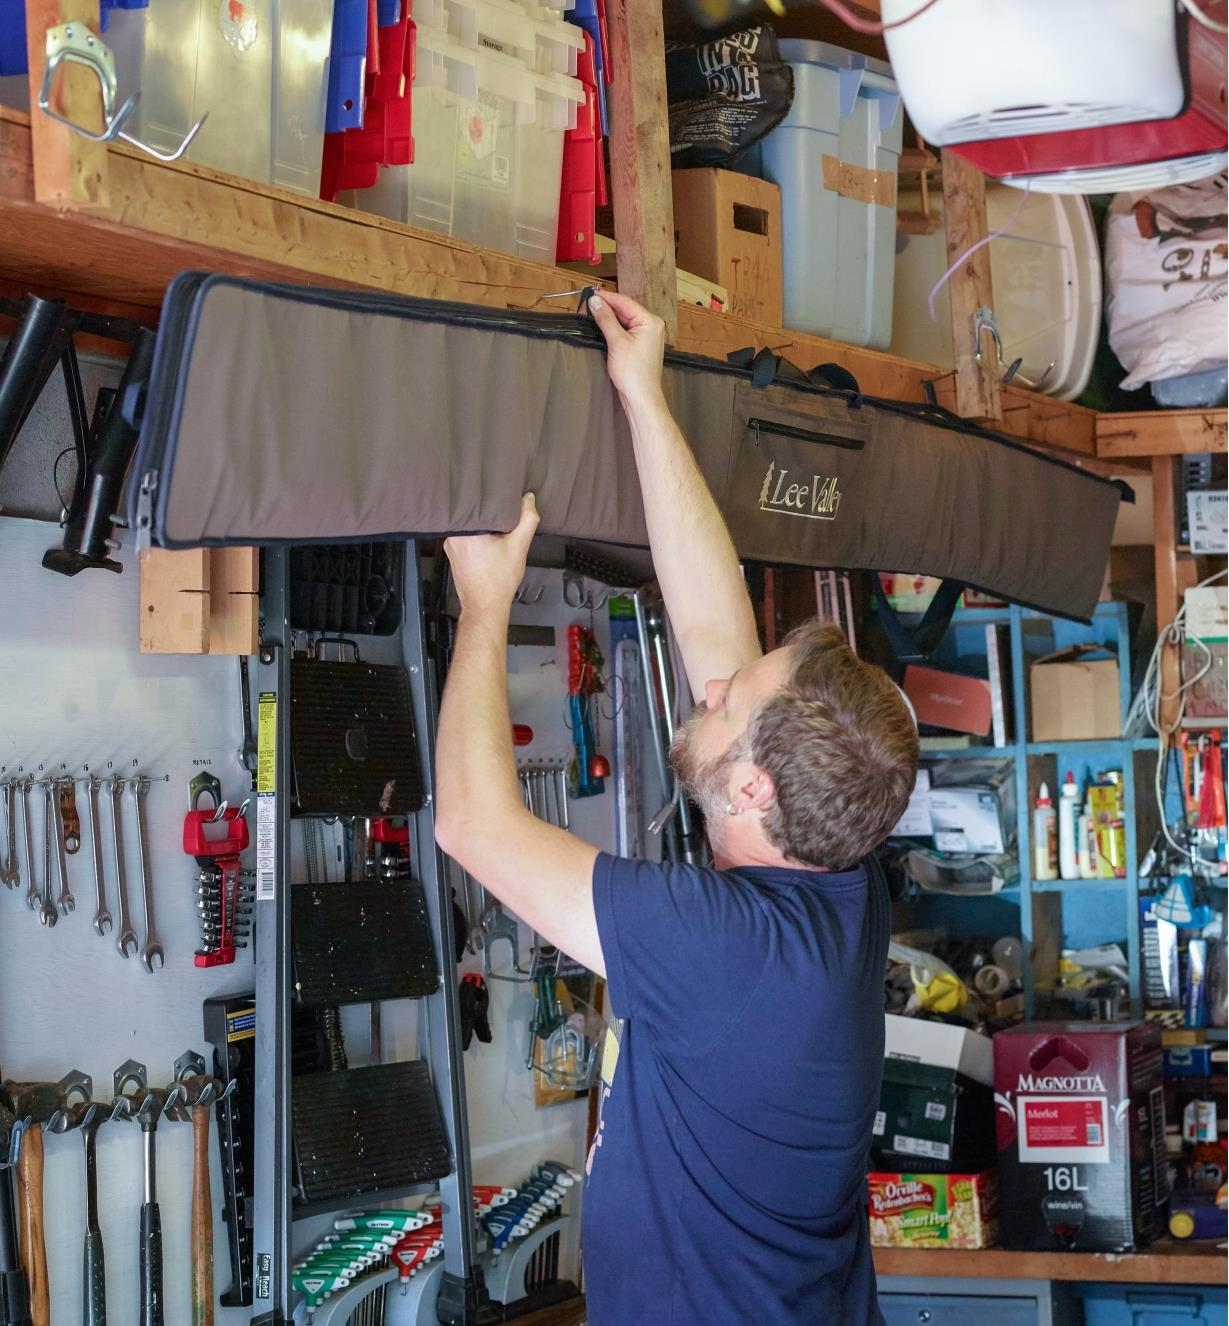 Hanging the large guide rail bag horizontally on a workshop wall